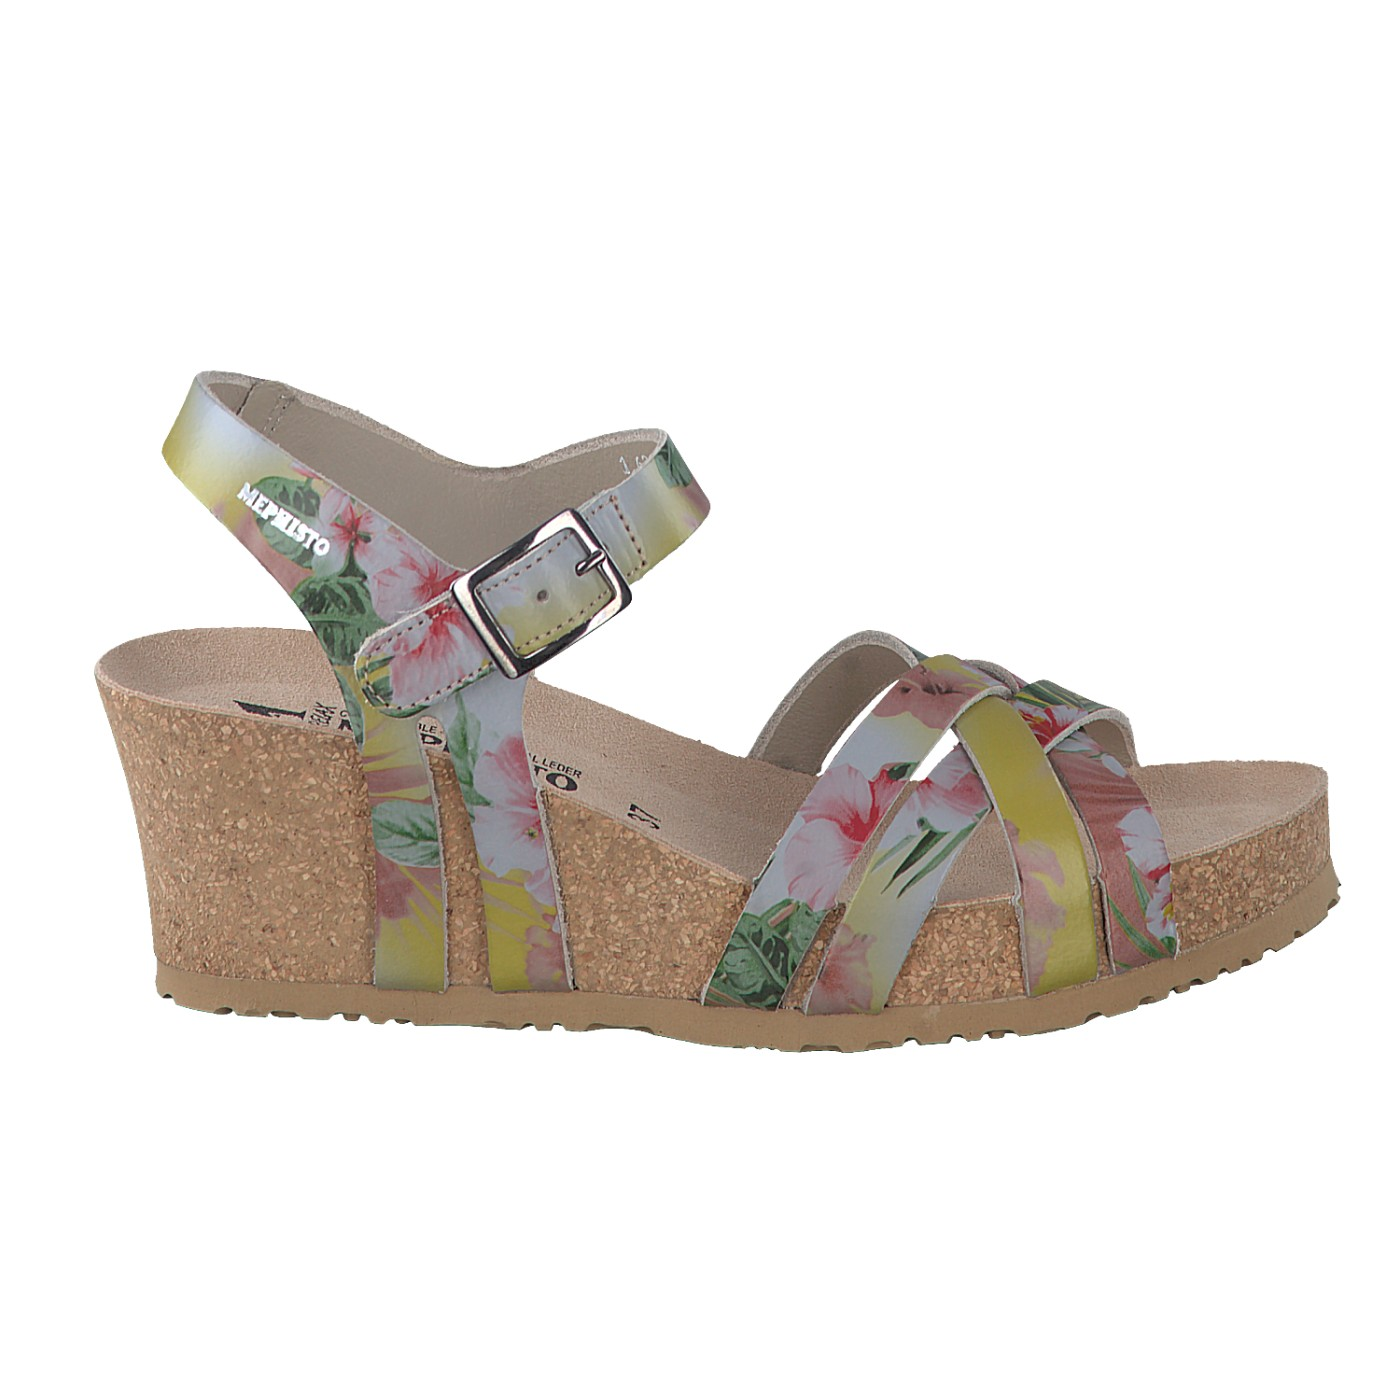 Mephisto LANNY Multicolore - Chaussures Sandale Femme